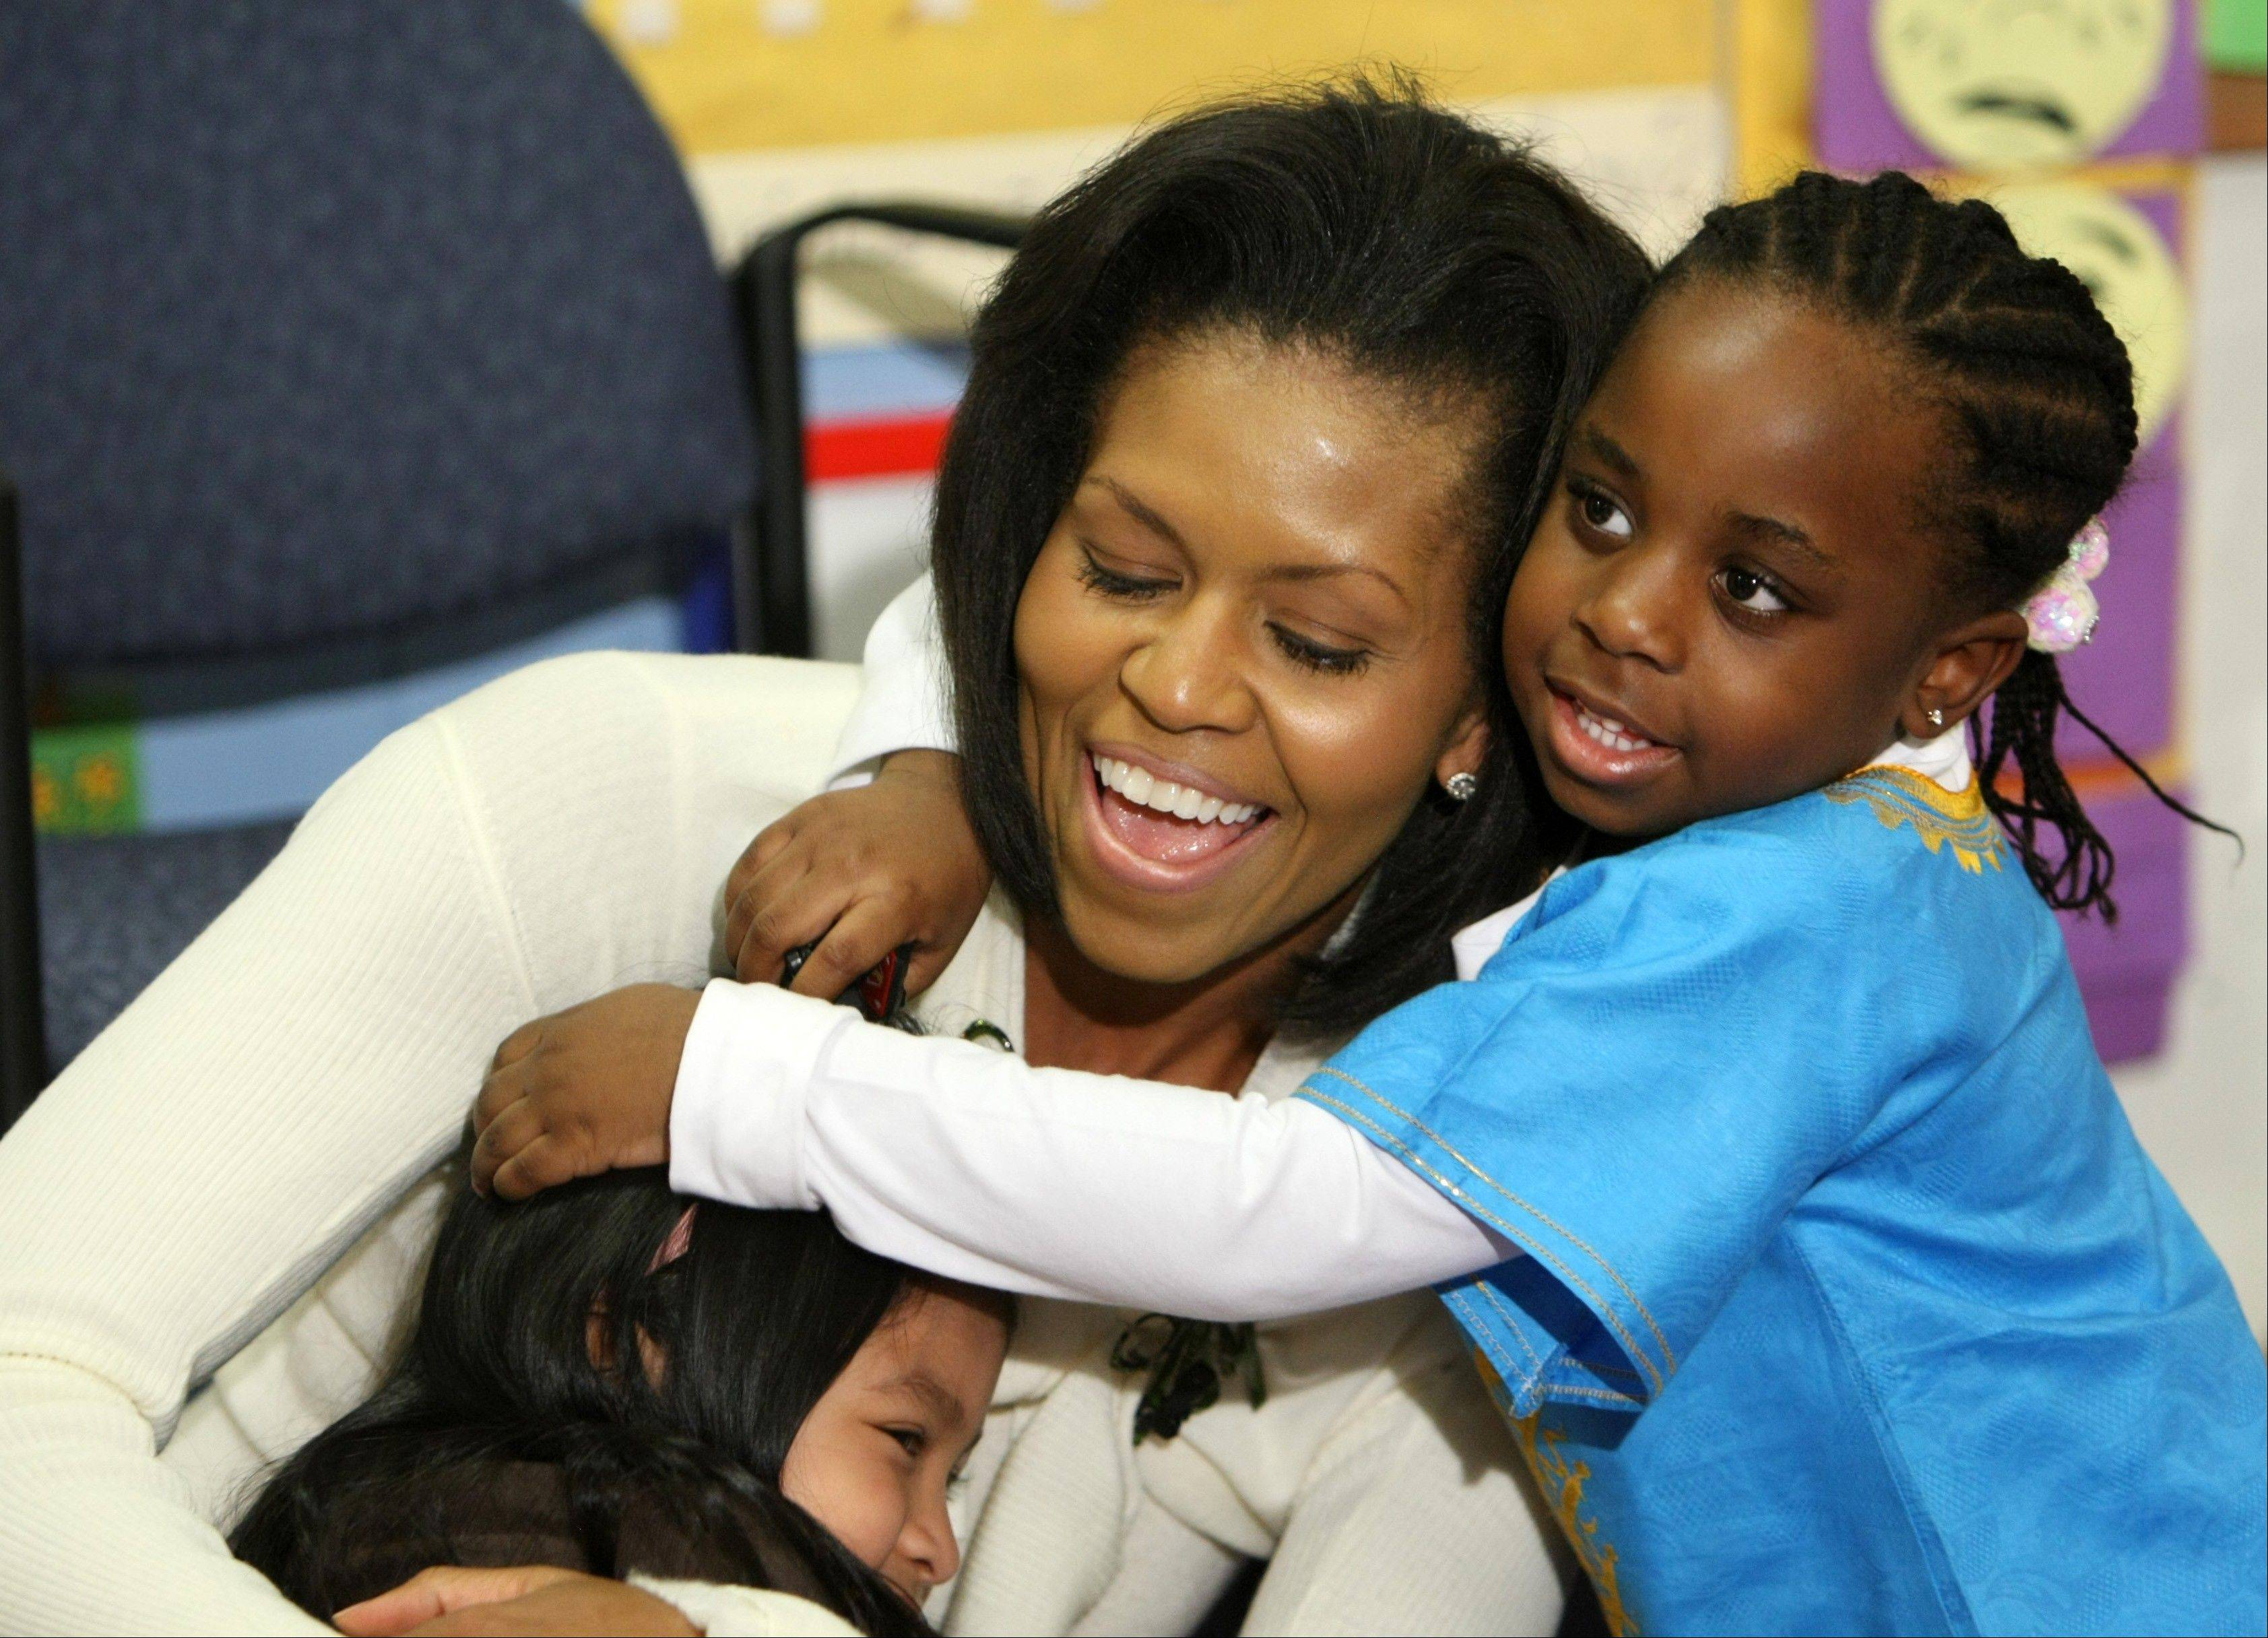 In this Feb. 10, 2009, file photo, first lady Michelle Obama hugs children after reading a book at Mary's Center in Washington. She is 5-foot-11, and she is world-famous. Sometimes she inspires awe in her admirers. She has been accused of being the angry type. So when Michelle Obama meets people, she likes to bring things down to earth with a hug.